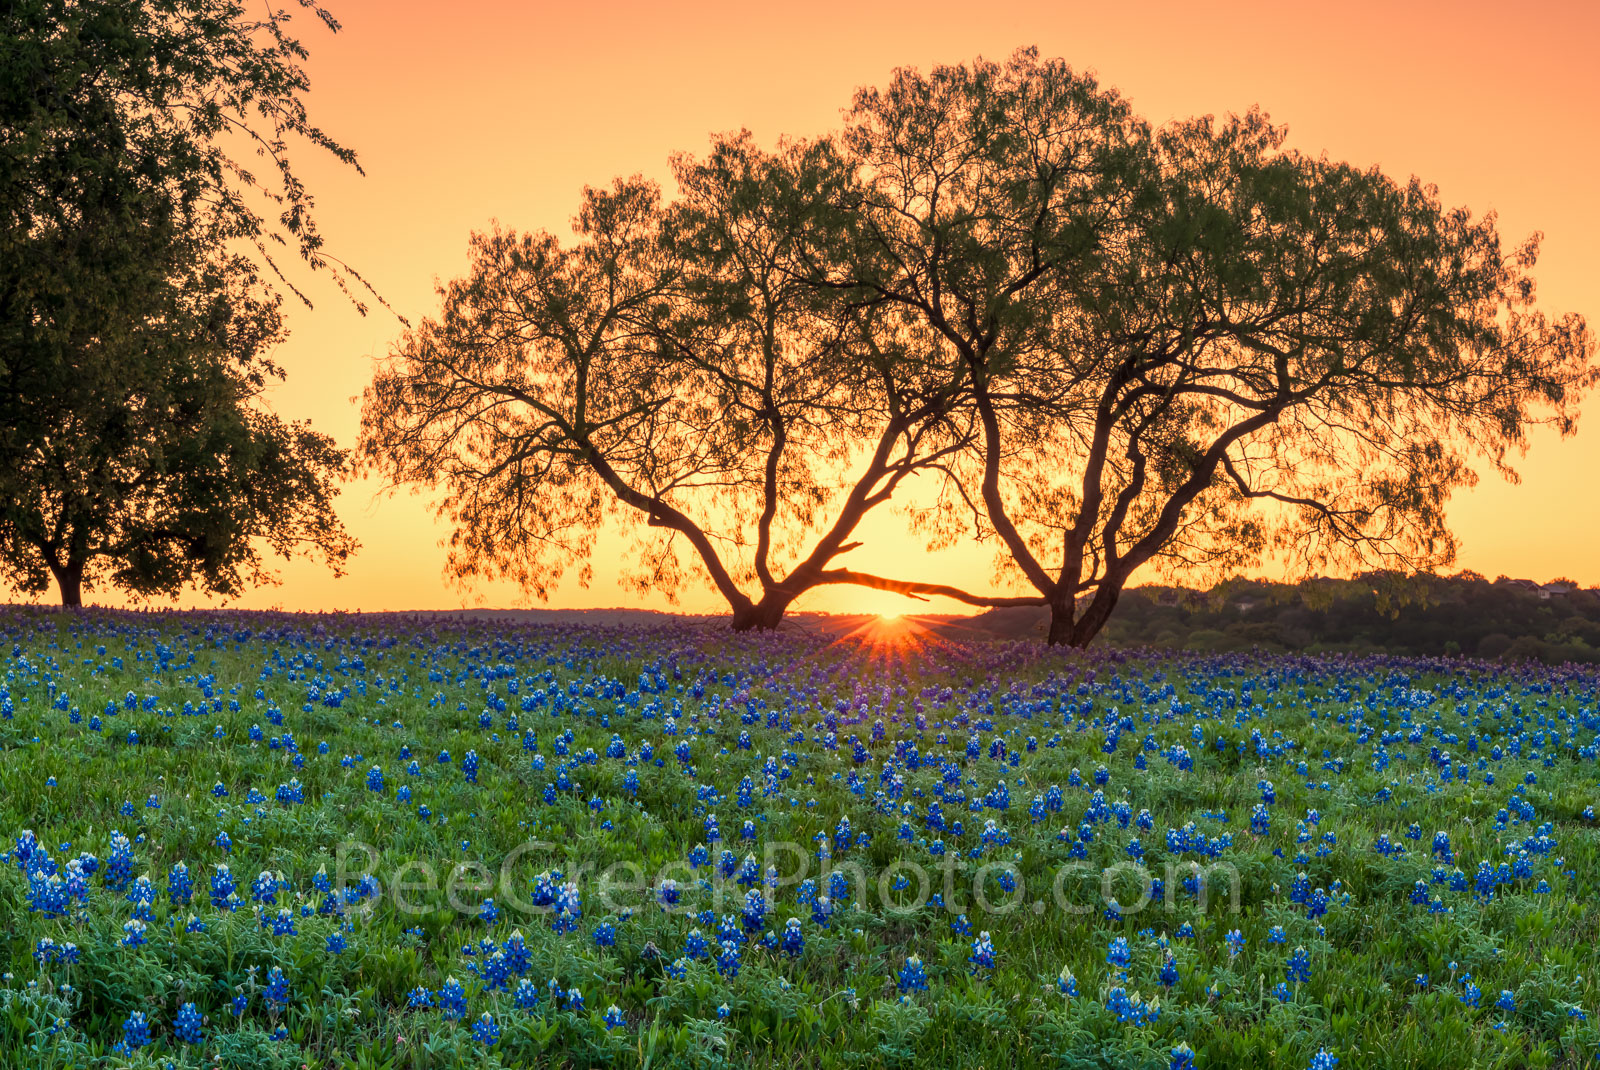 Bluebonnets, sunrise, field of bluebonnets, bluebonnets, wildflowers, mesquite tree, Texas bluebonnet, texas hill country, Lady Bird johnson, Highway beautification act, spring, spring flowers, landsc, photo